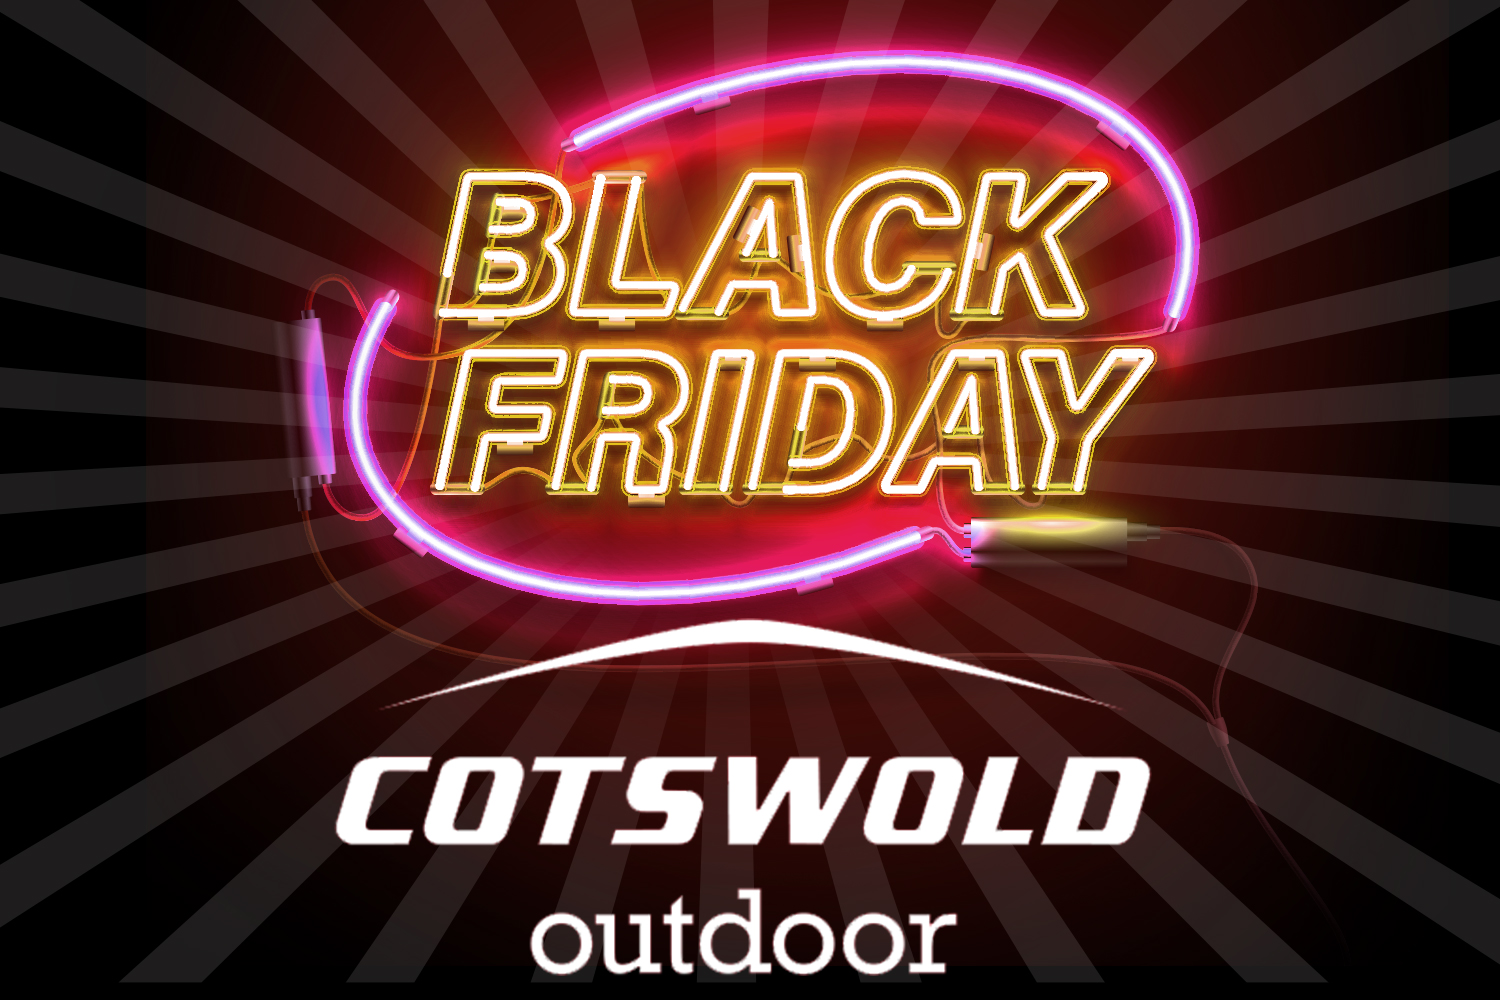 Heading outdoors? Head to Cotswold Outdoors first this Black Friday